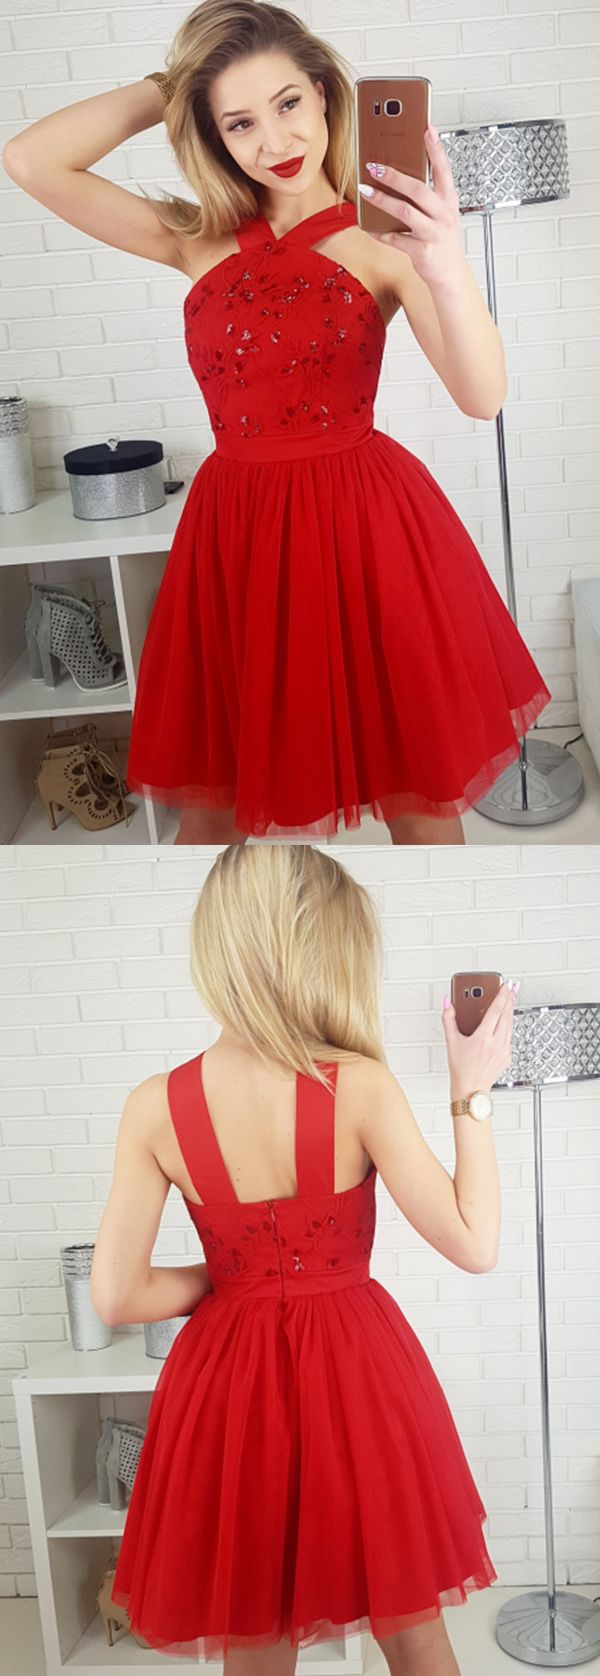 red homecoming dresses, halter homecoming dresses, short homecoming dresses, a line homecoming dresses